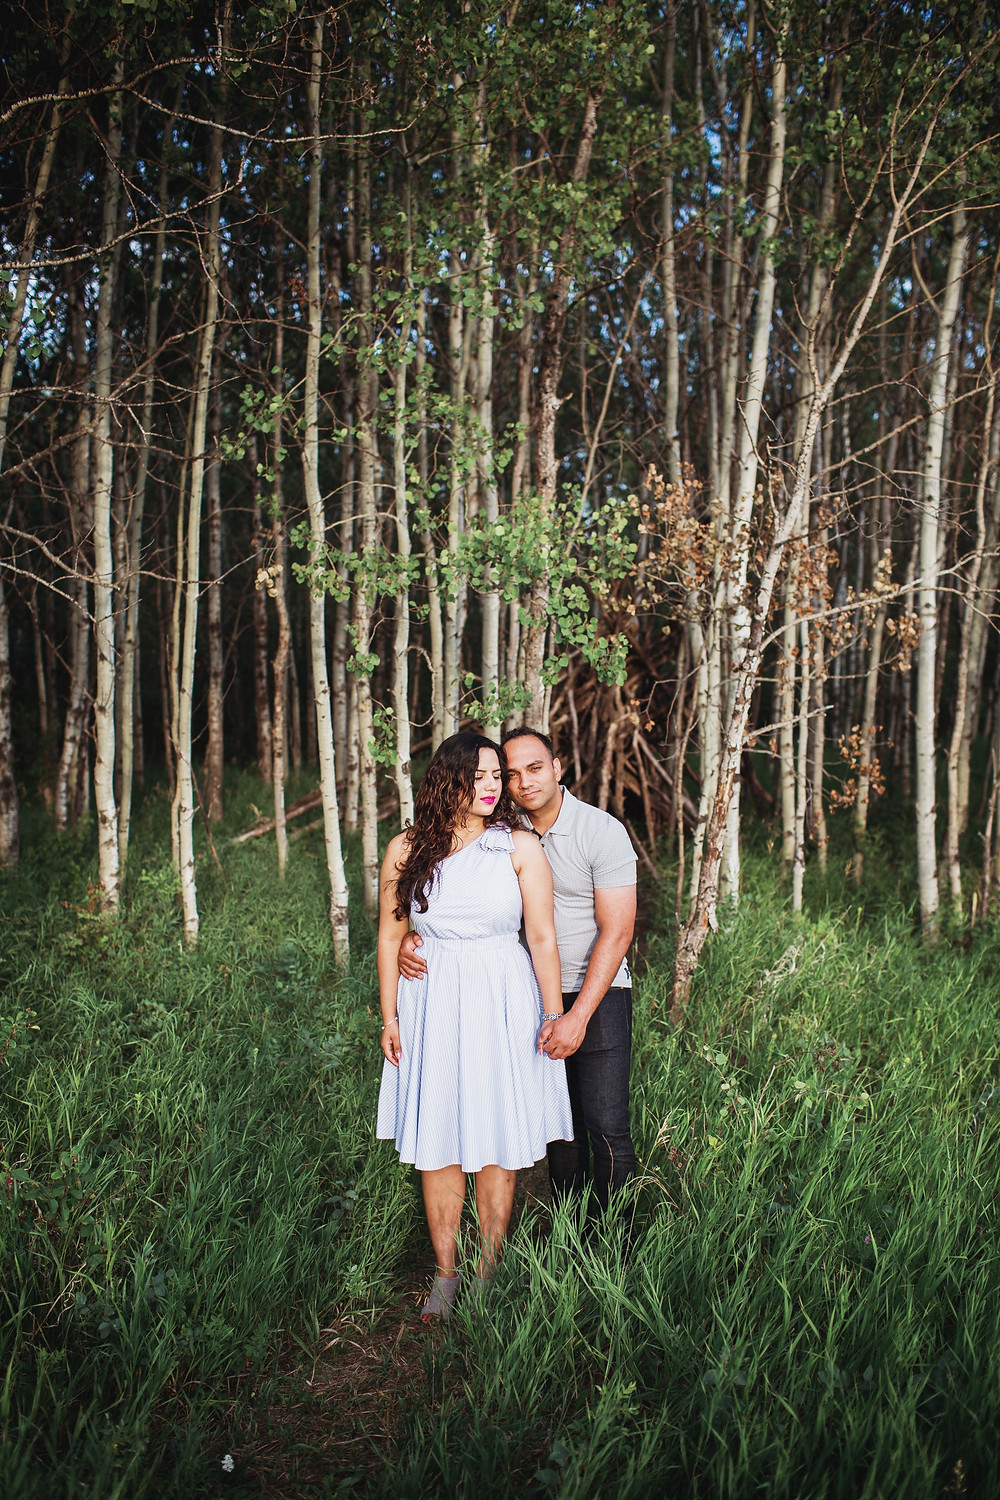 Winnipeg forest engagement photoshoot.